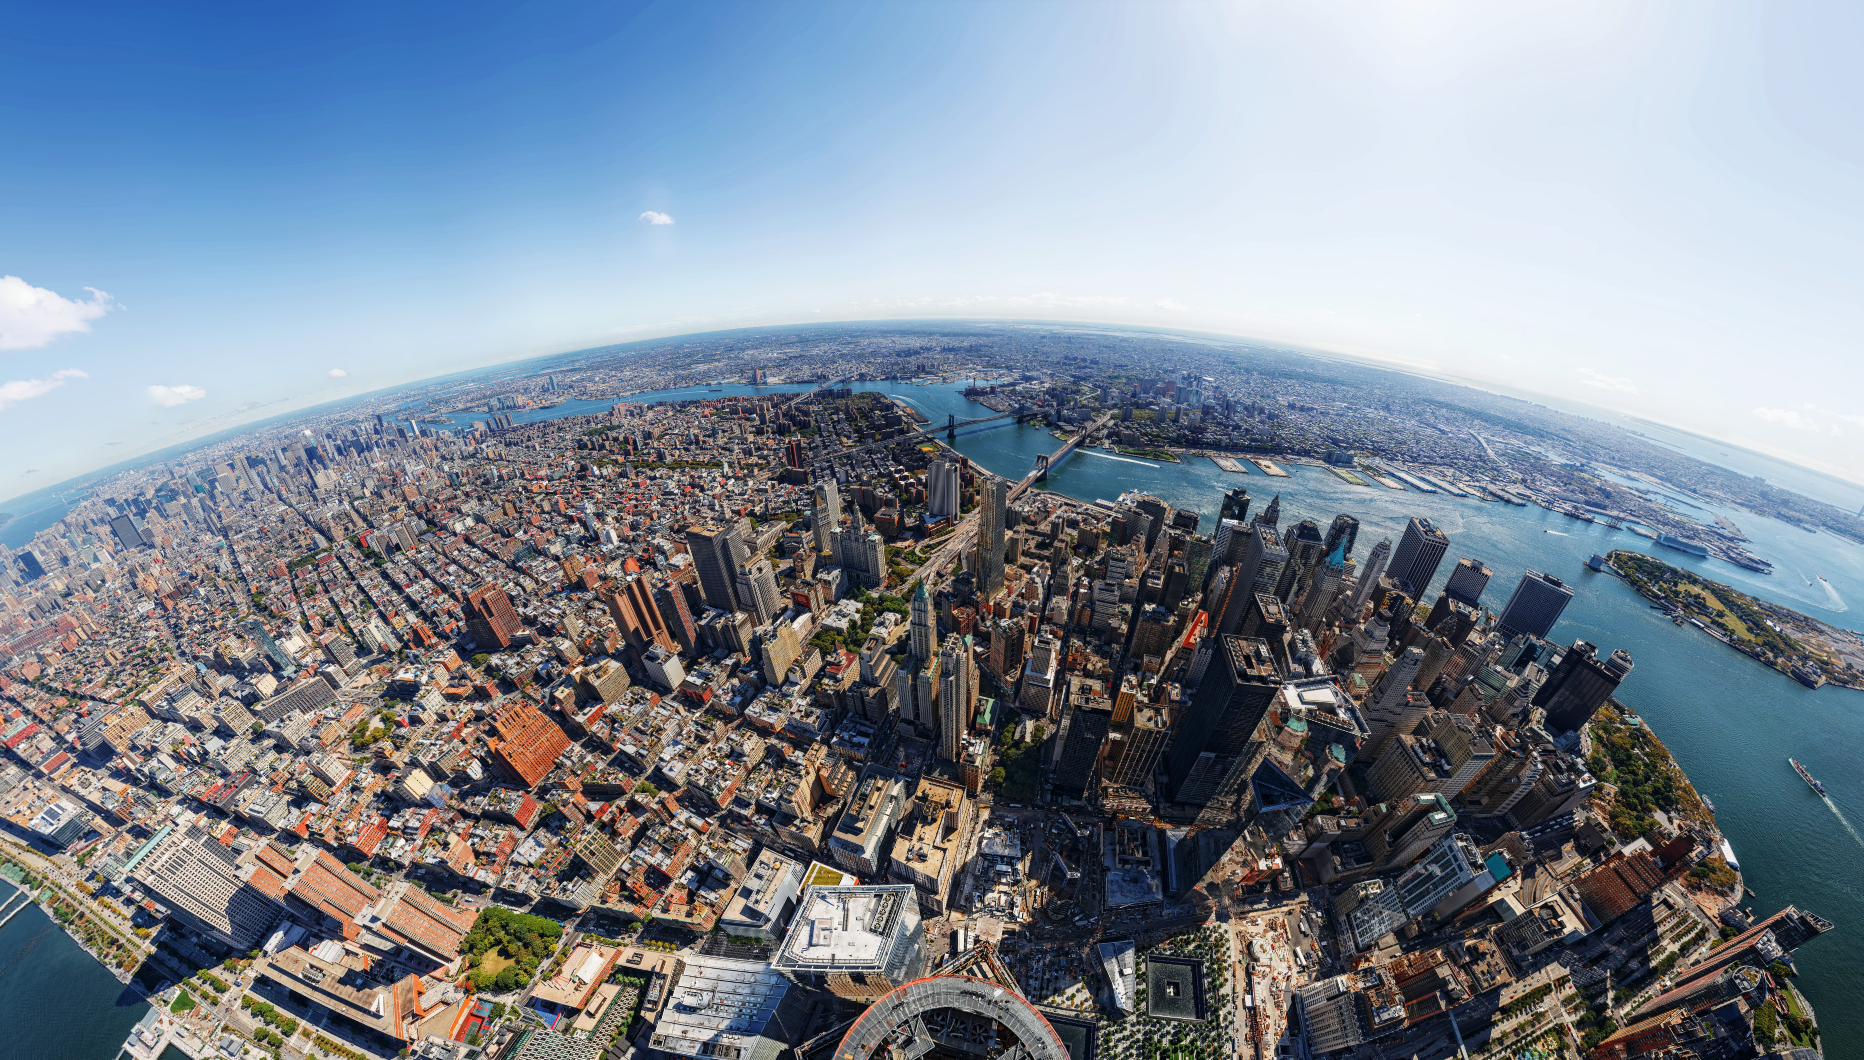 How To Take a Panorama From the Tallest Building In the U.S.